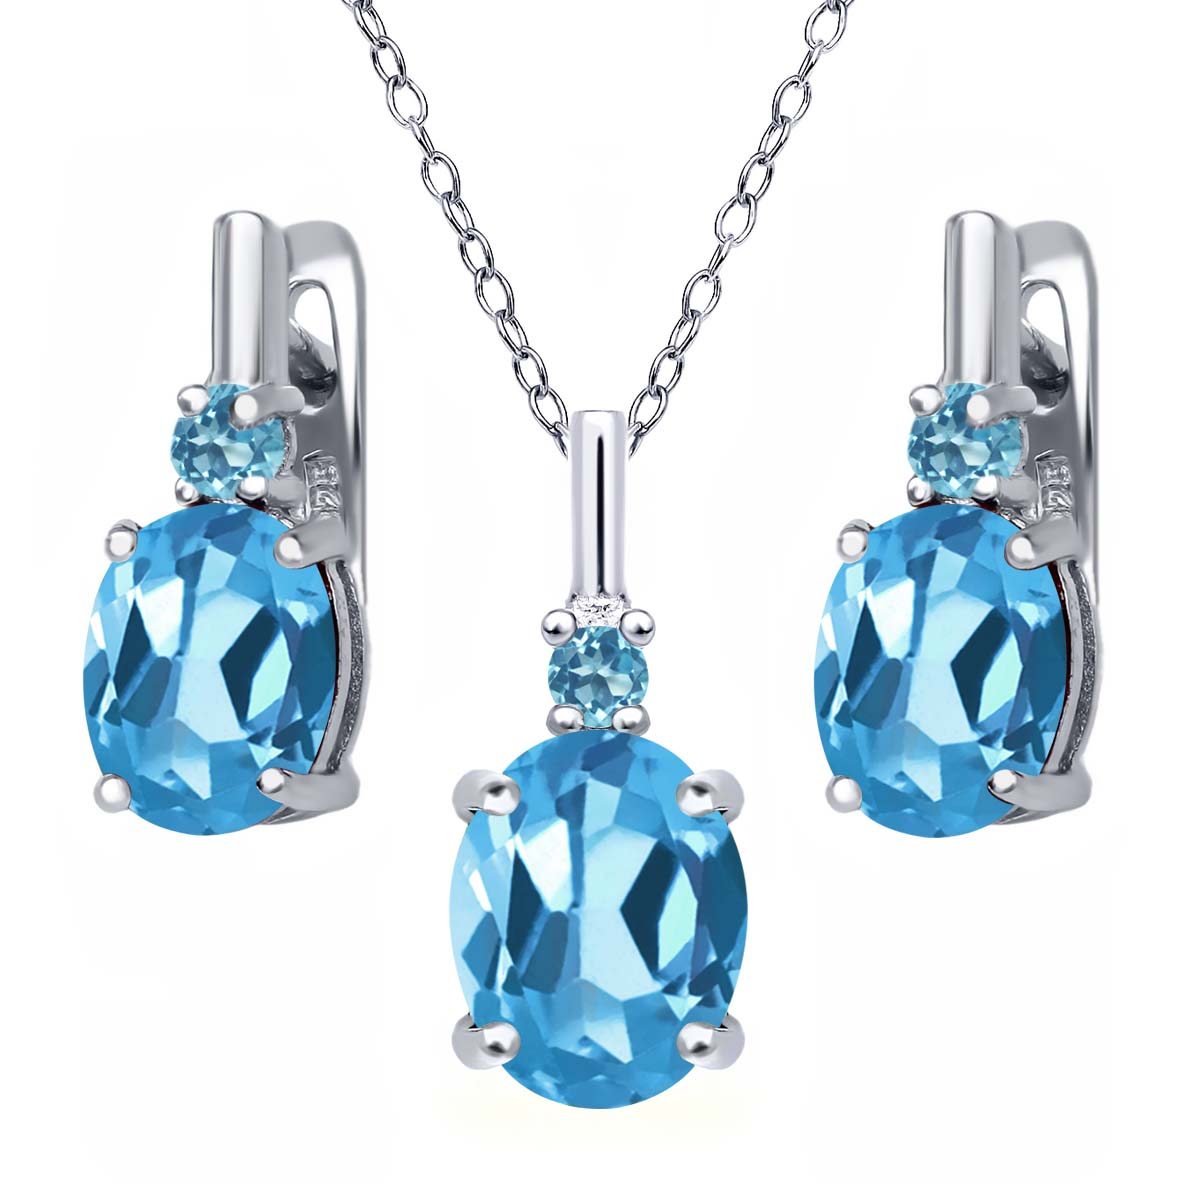 6.68 Ct Oval Swiss Blue Topaz and Simulated Topaz 925 Silver Pendant Earring Set by